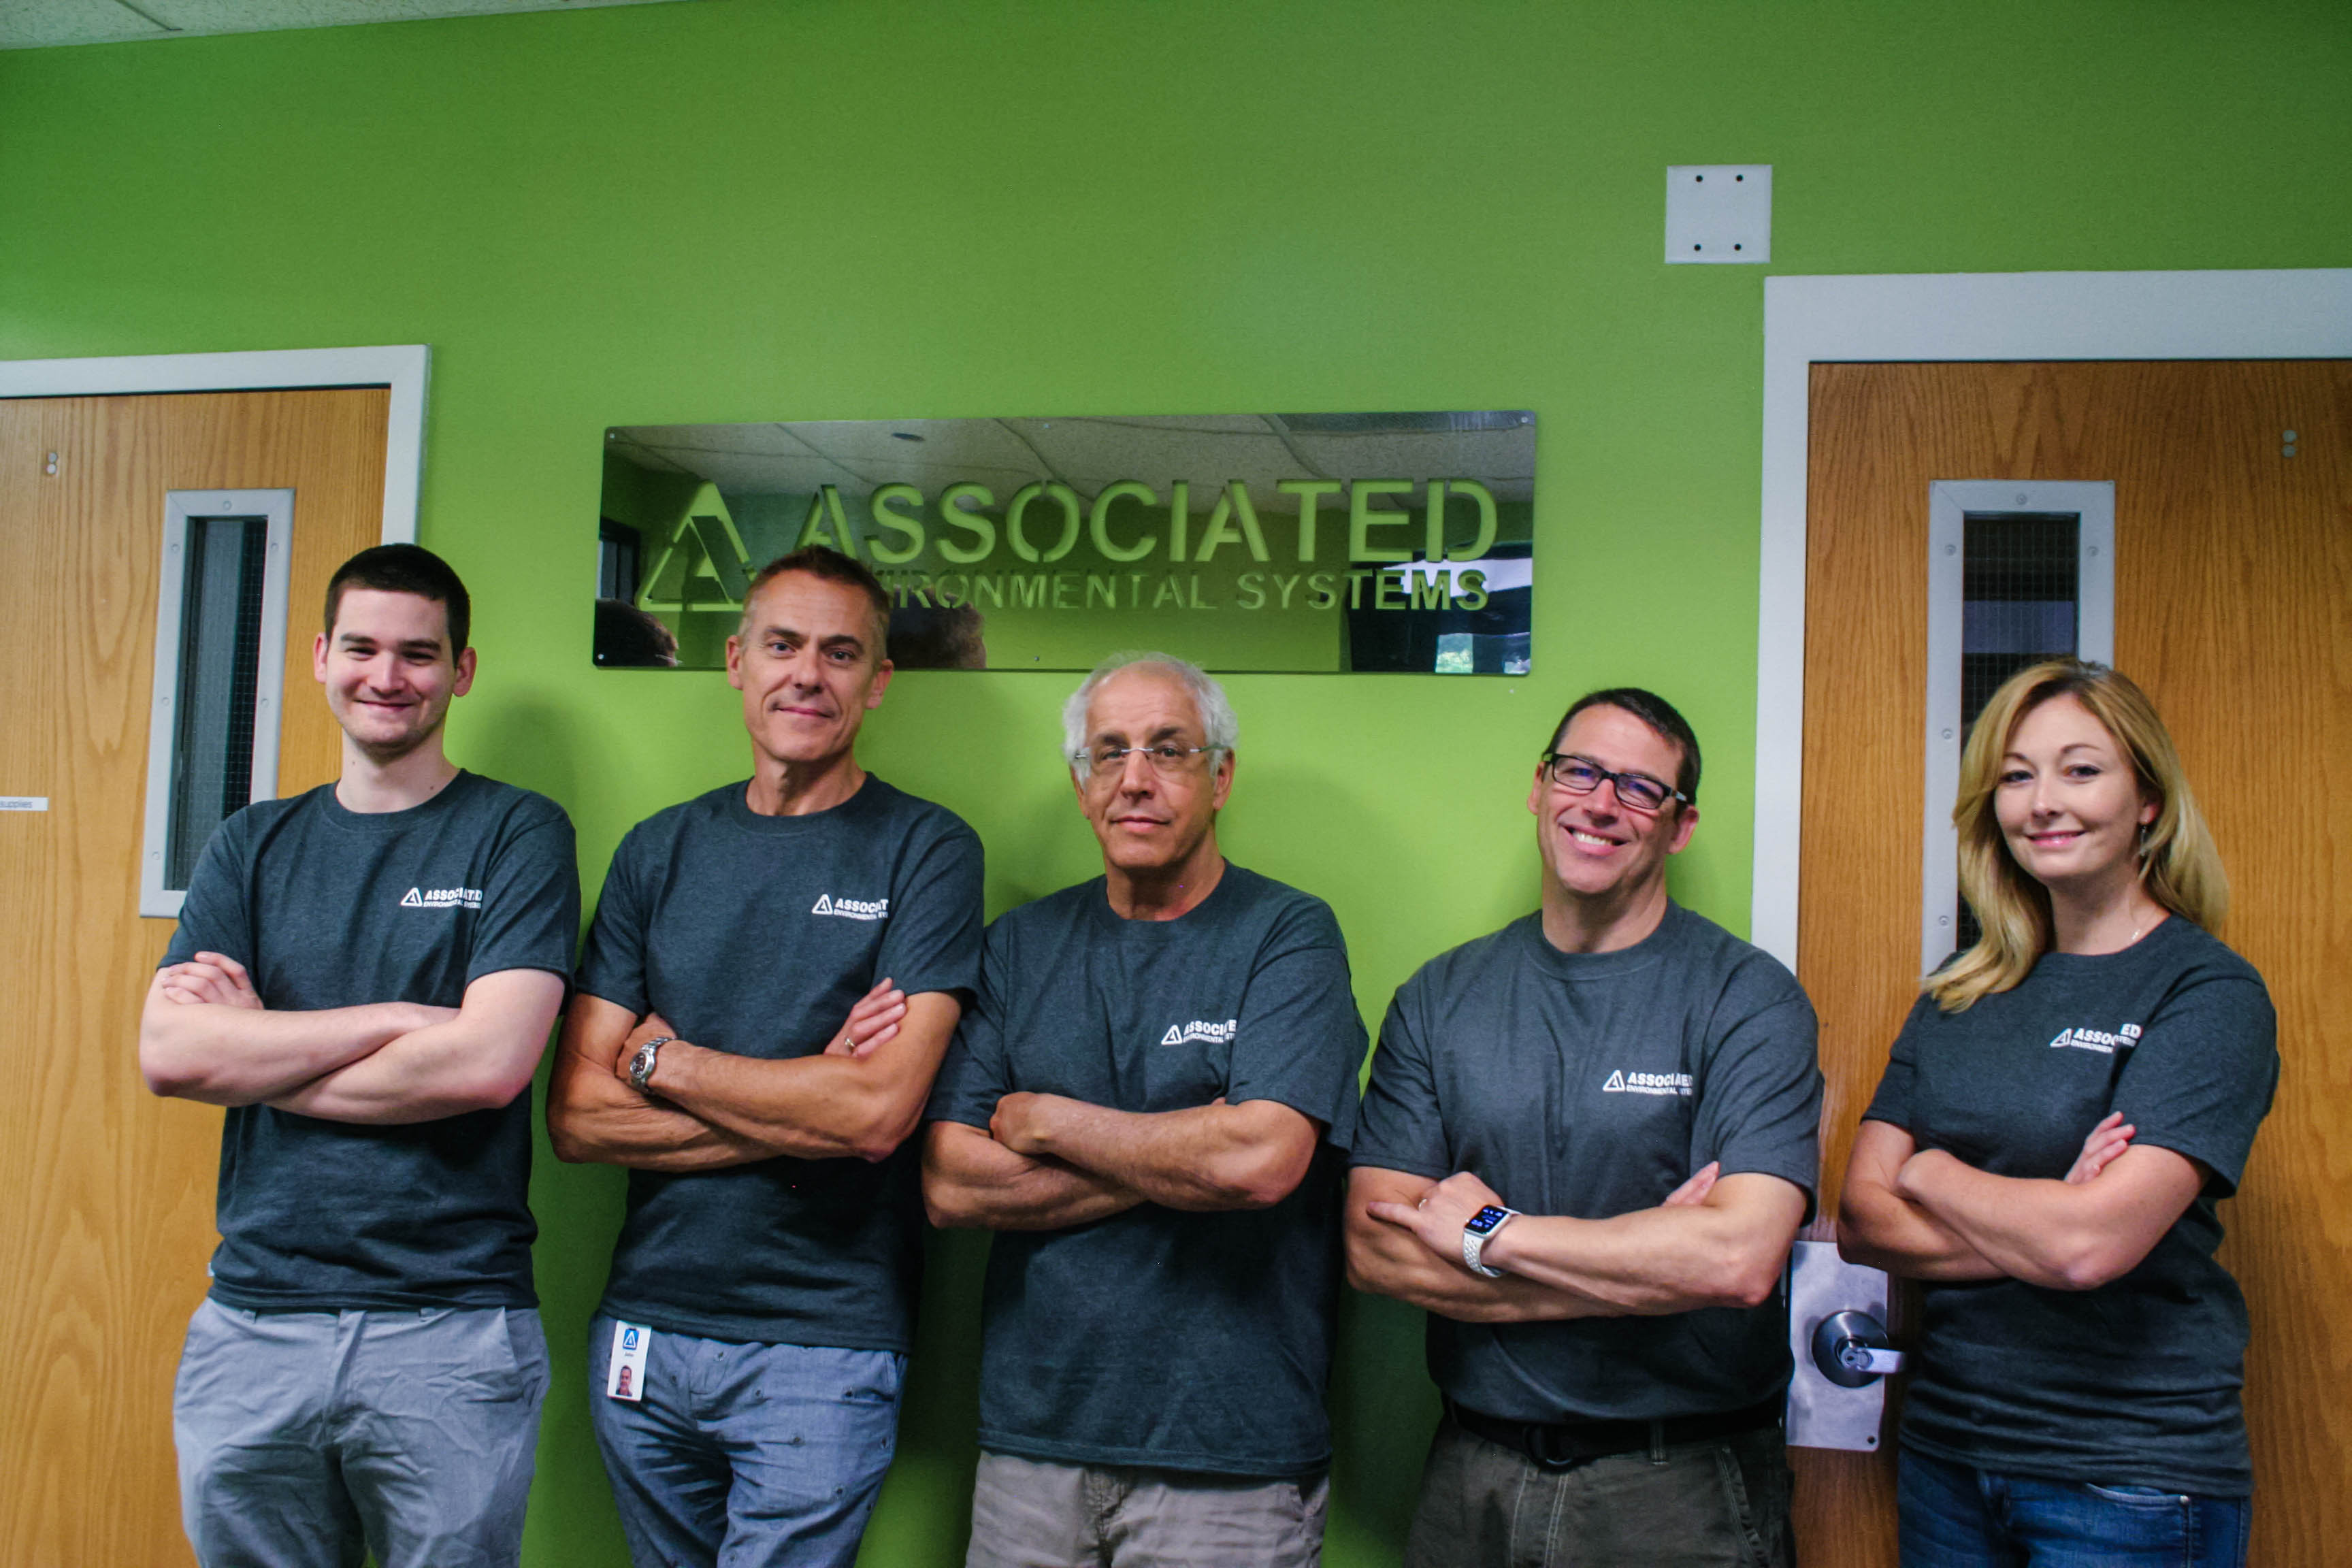 Associated Environmental Systems innovative leadership team inspires growth and your career.